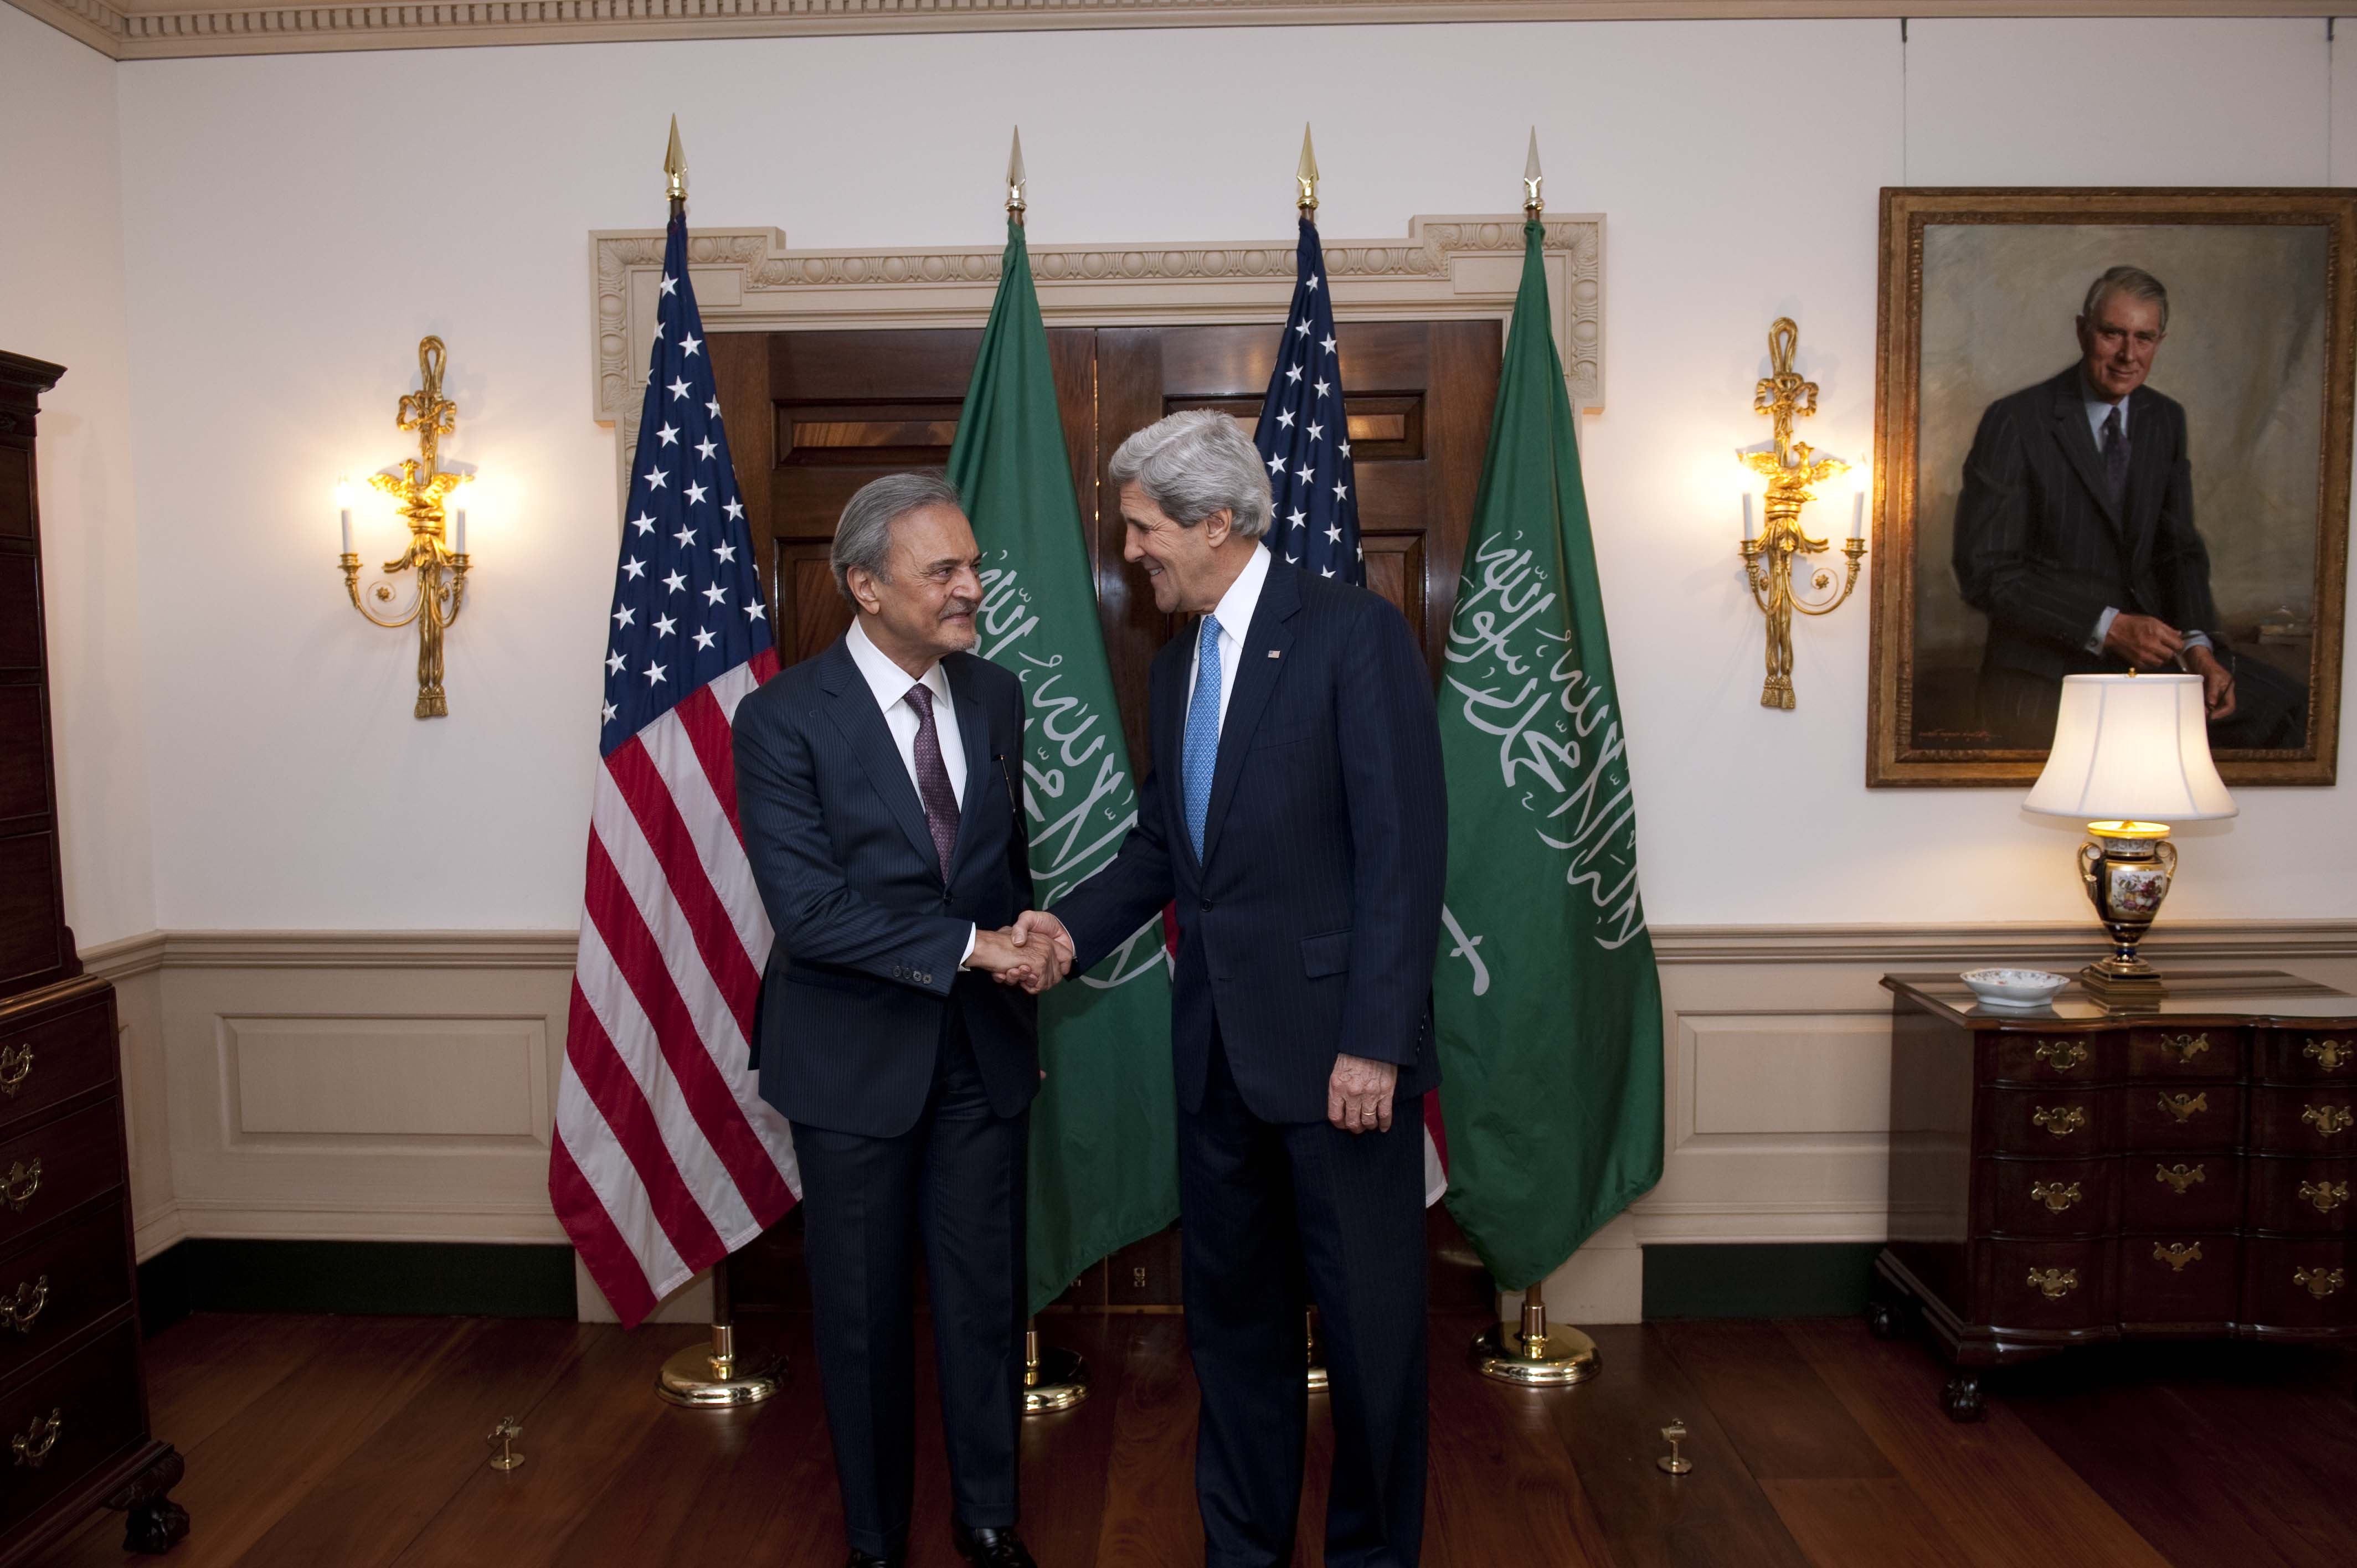 Secretary Of State Kerry Facelift 2015 | Personal Blog